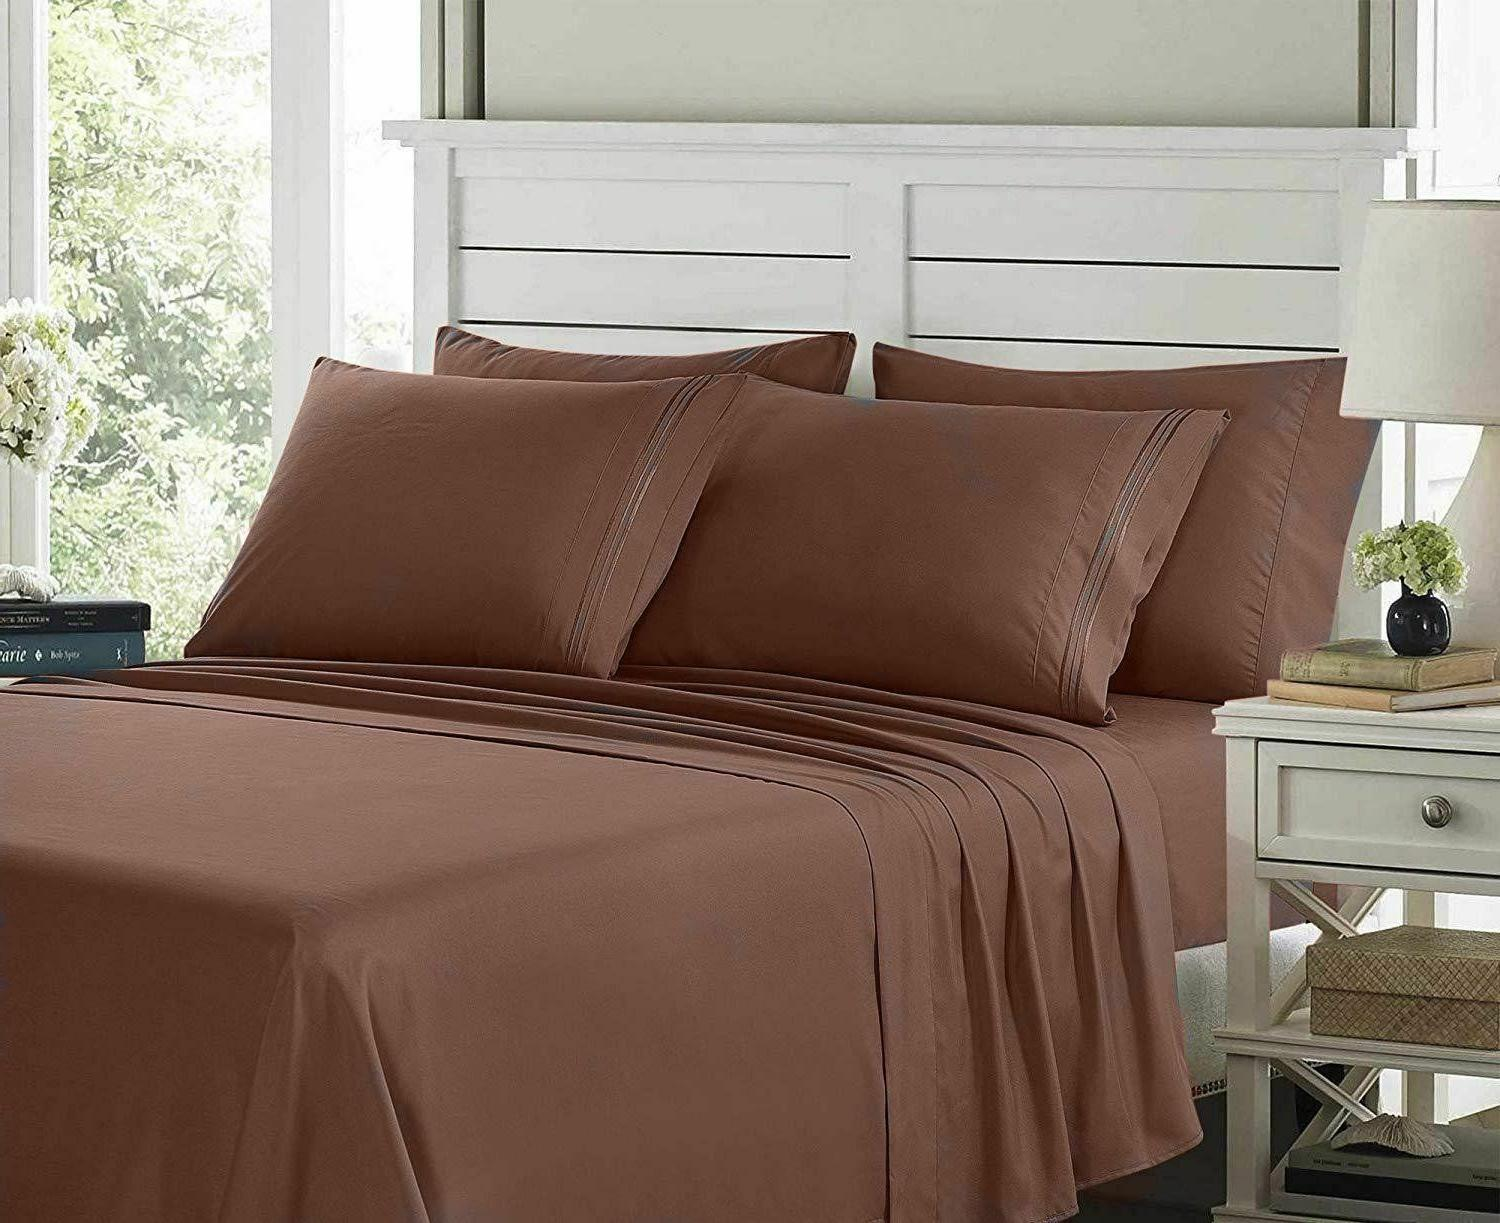 Egyptian Hotel 6 Piece Deep Soft Sheet Set